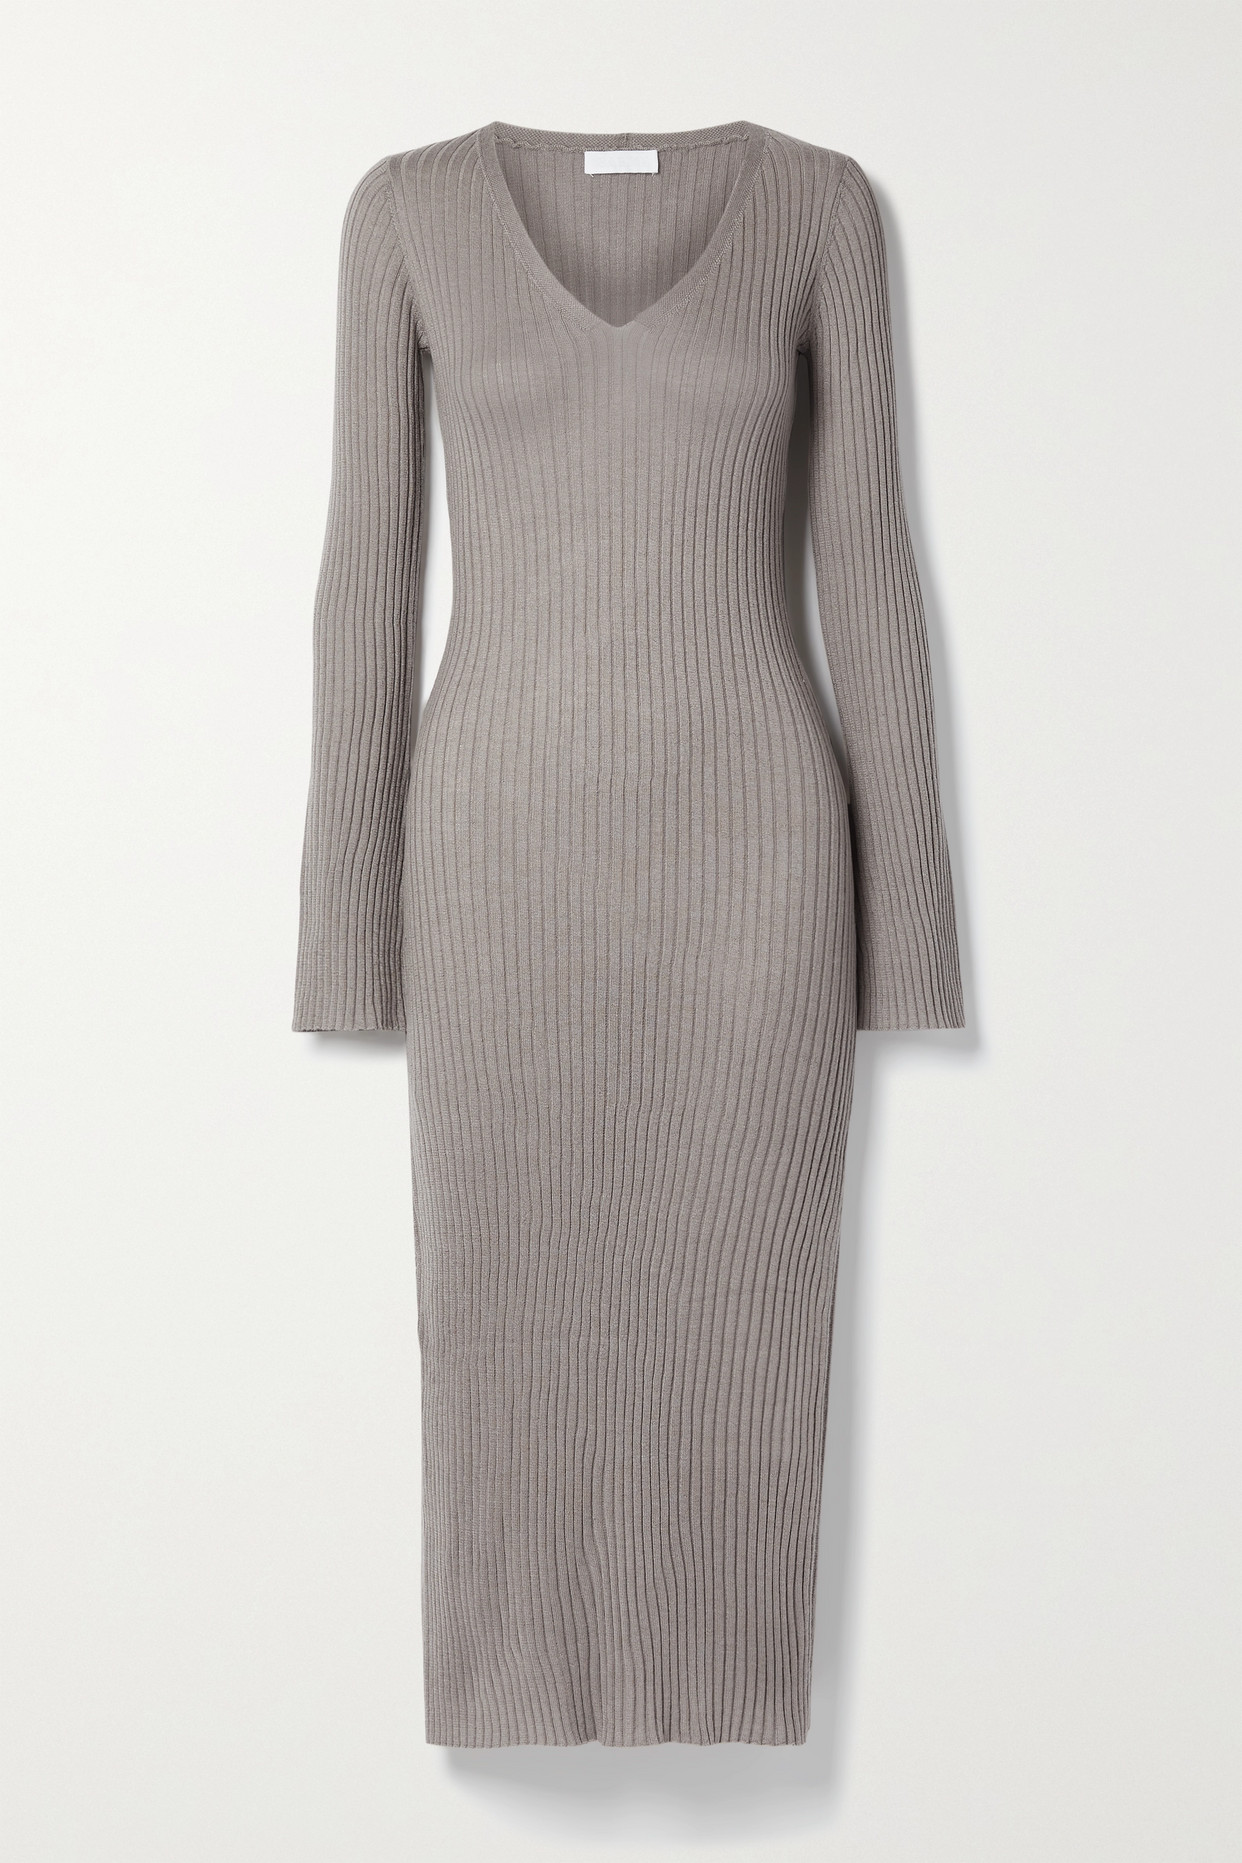 Sablyn Shelly Ribbed Cashmere Midi Dress In Neutrals